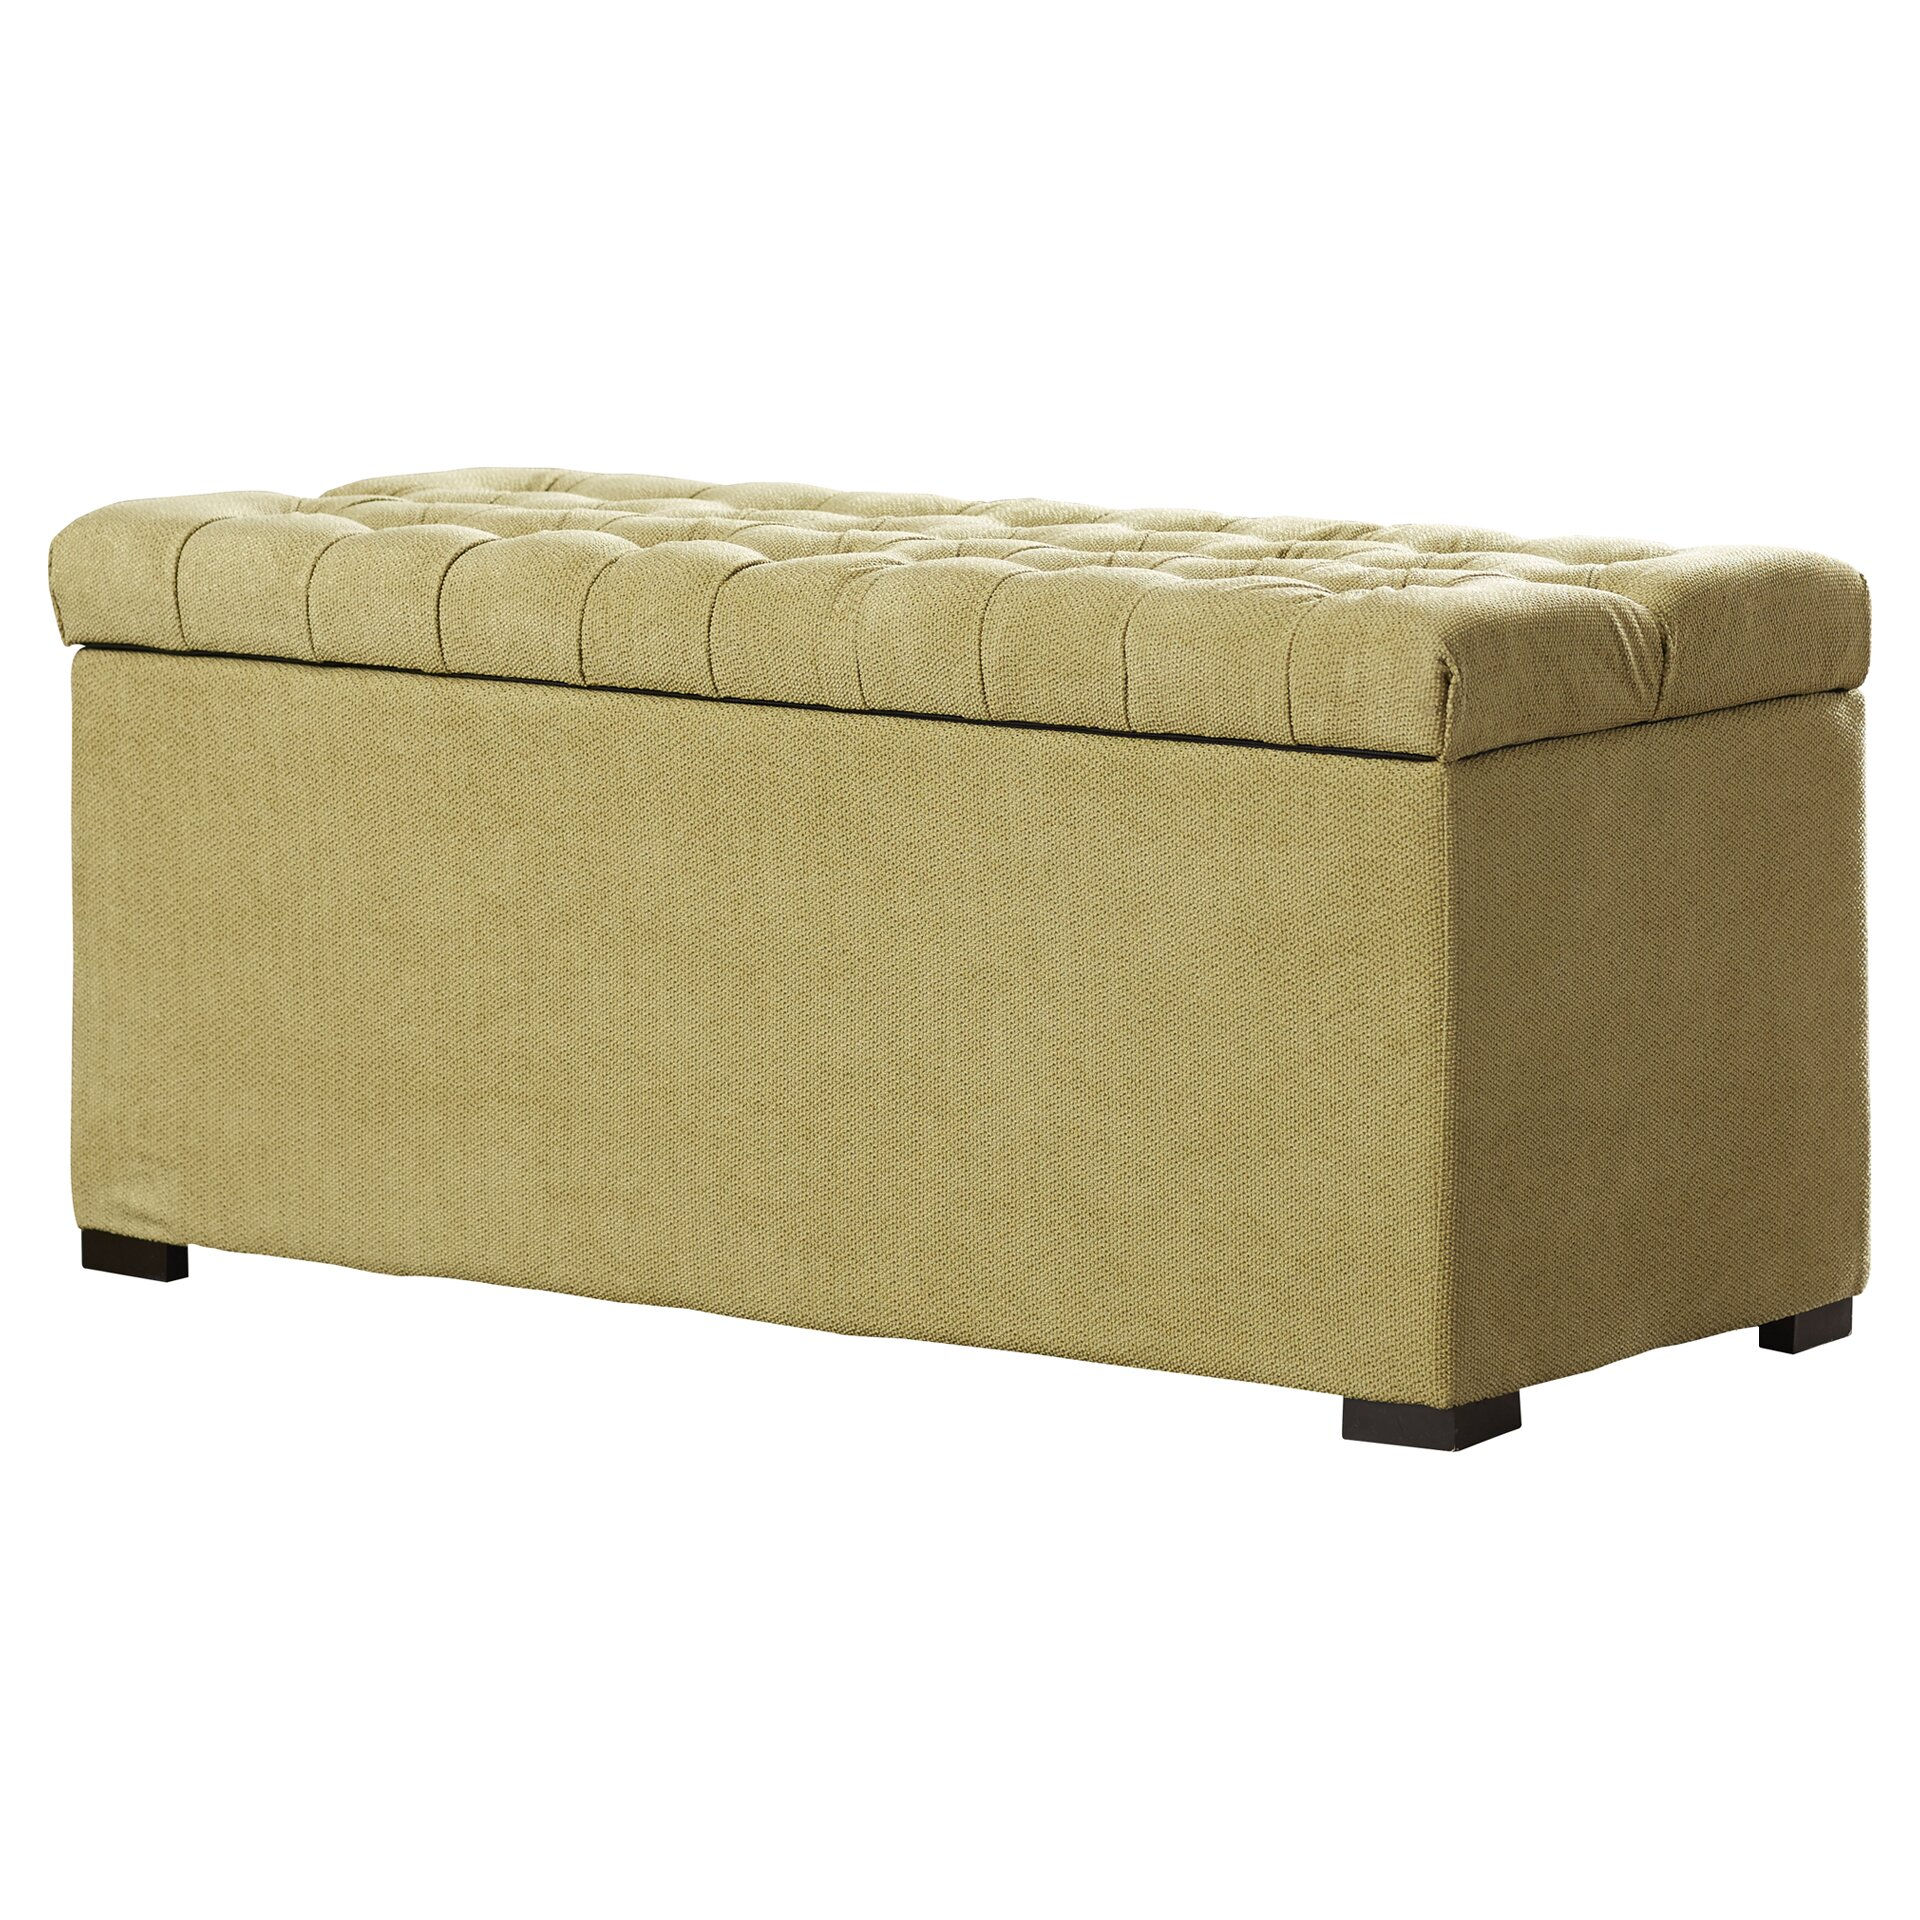 Red Barrel Studio Elk Valley Upholstered Storage Bedroom Bench Reviews Wayfair